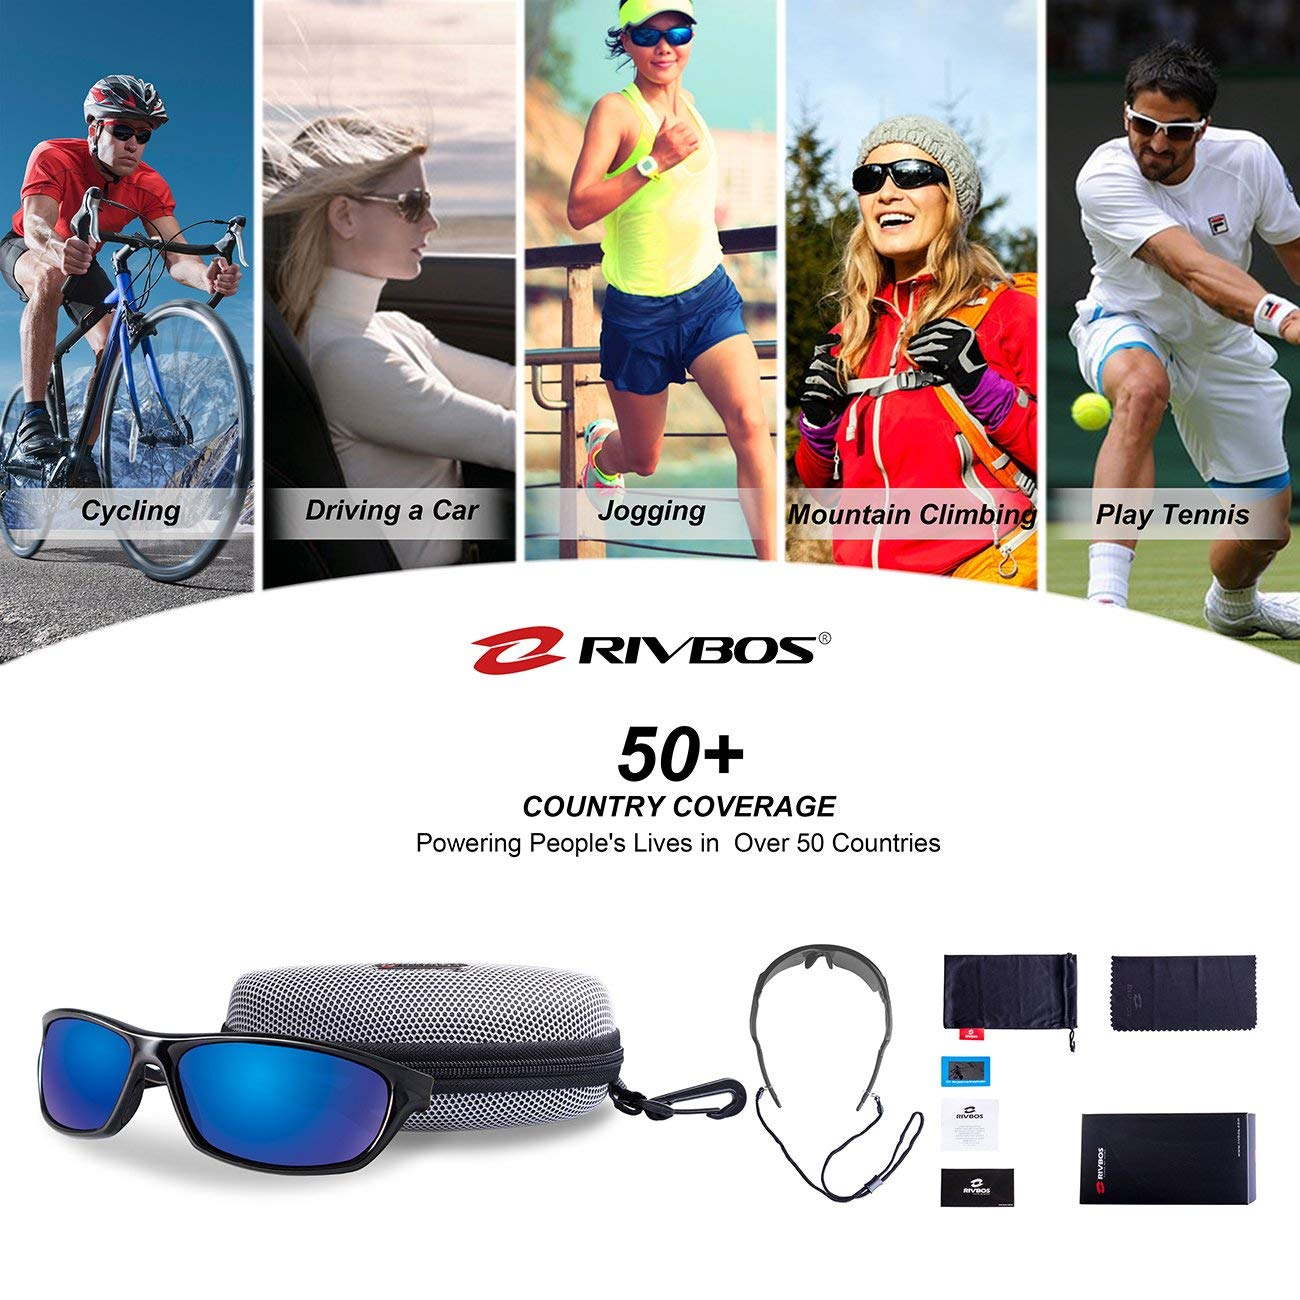 ac4ce6140e RIVBOS Polarized Sports Sunglasses Driving Glasses Shades for Men ...